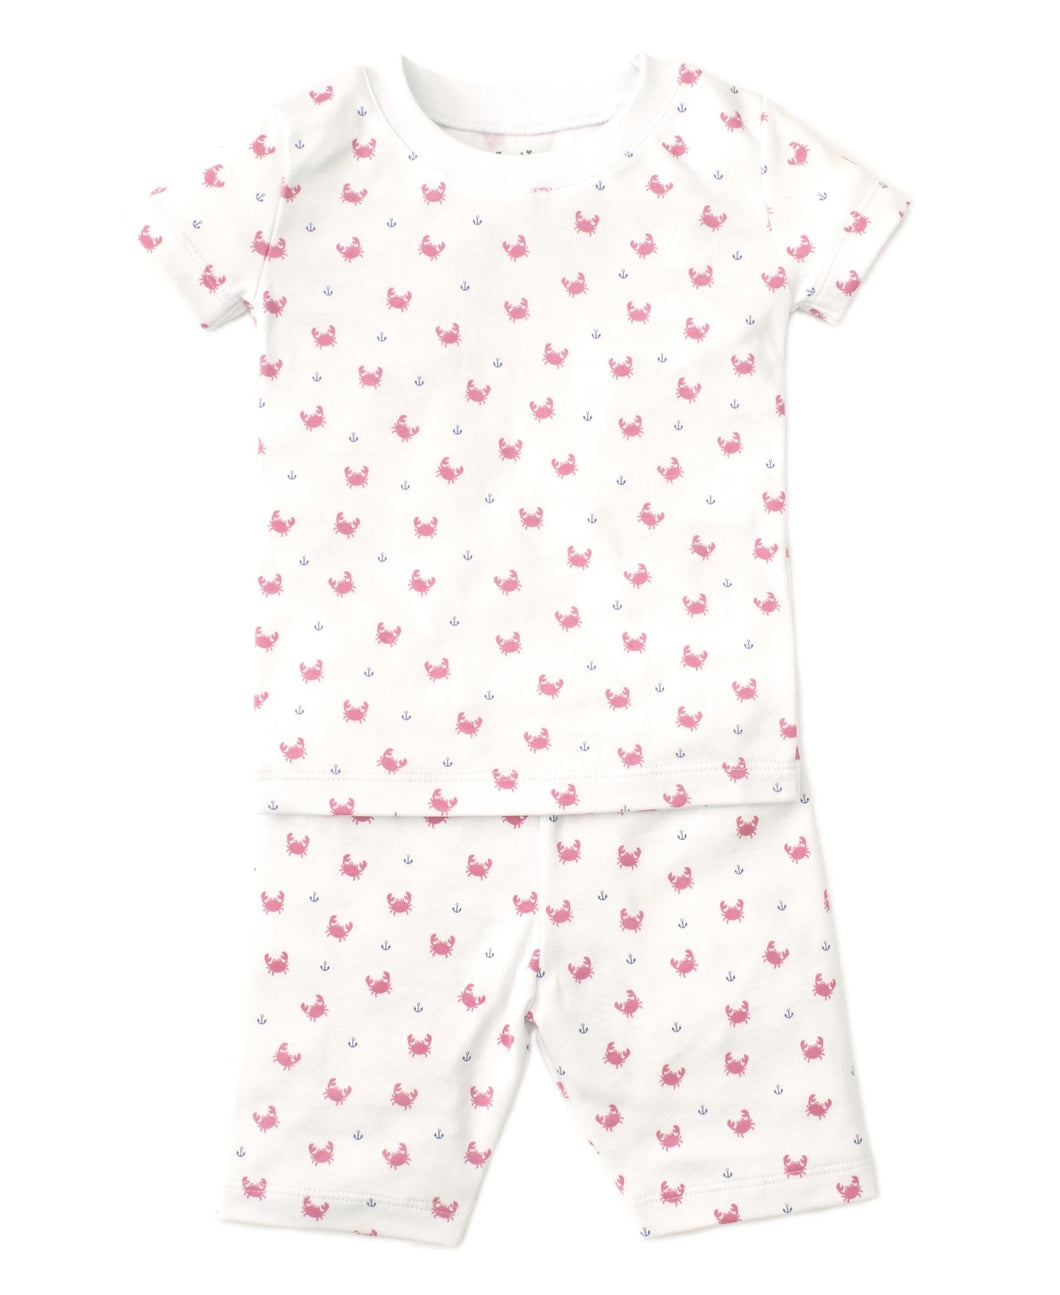 Crab Craze Pink Short Set Pajama Snug